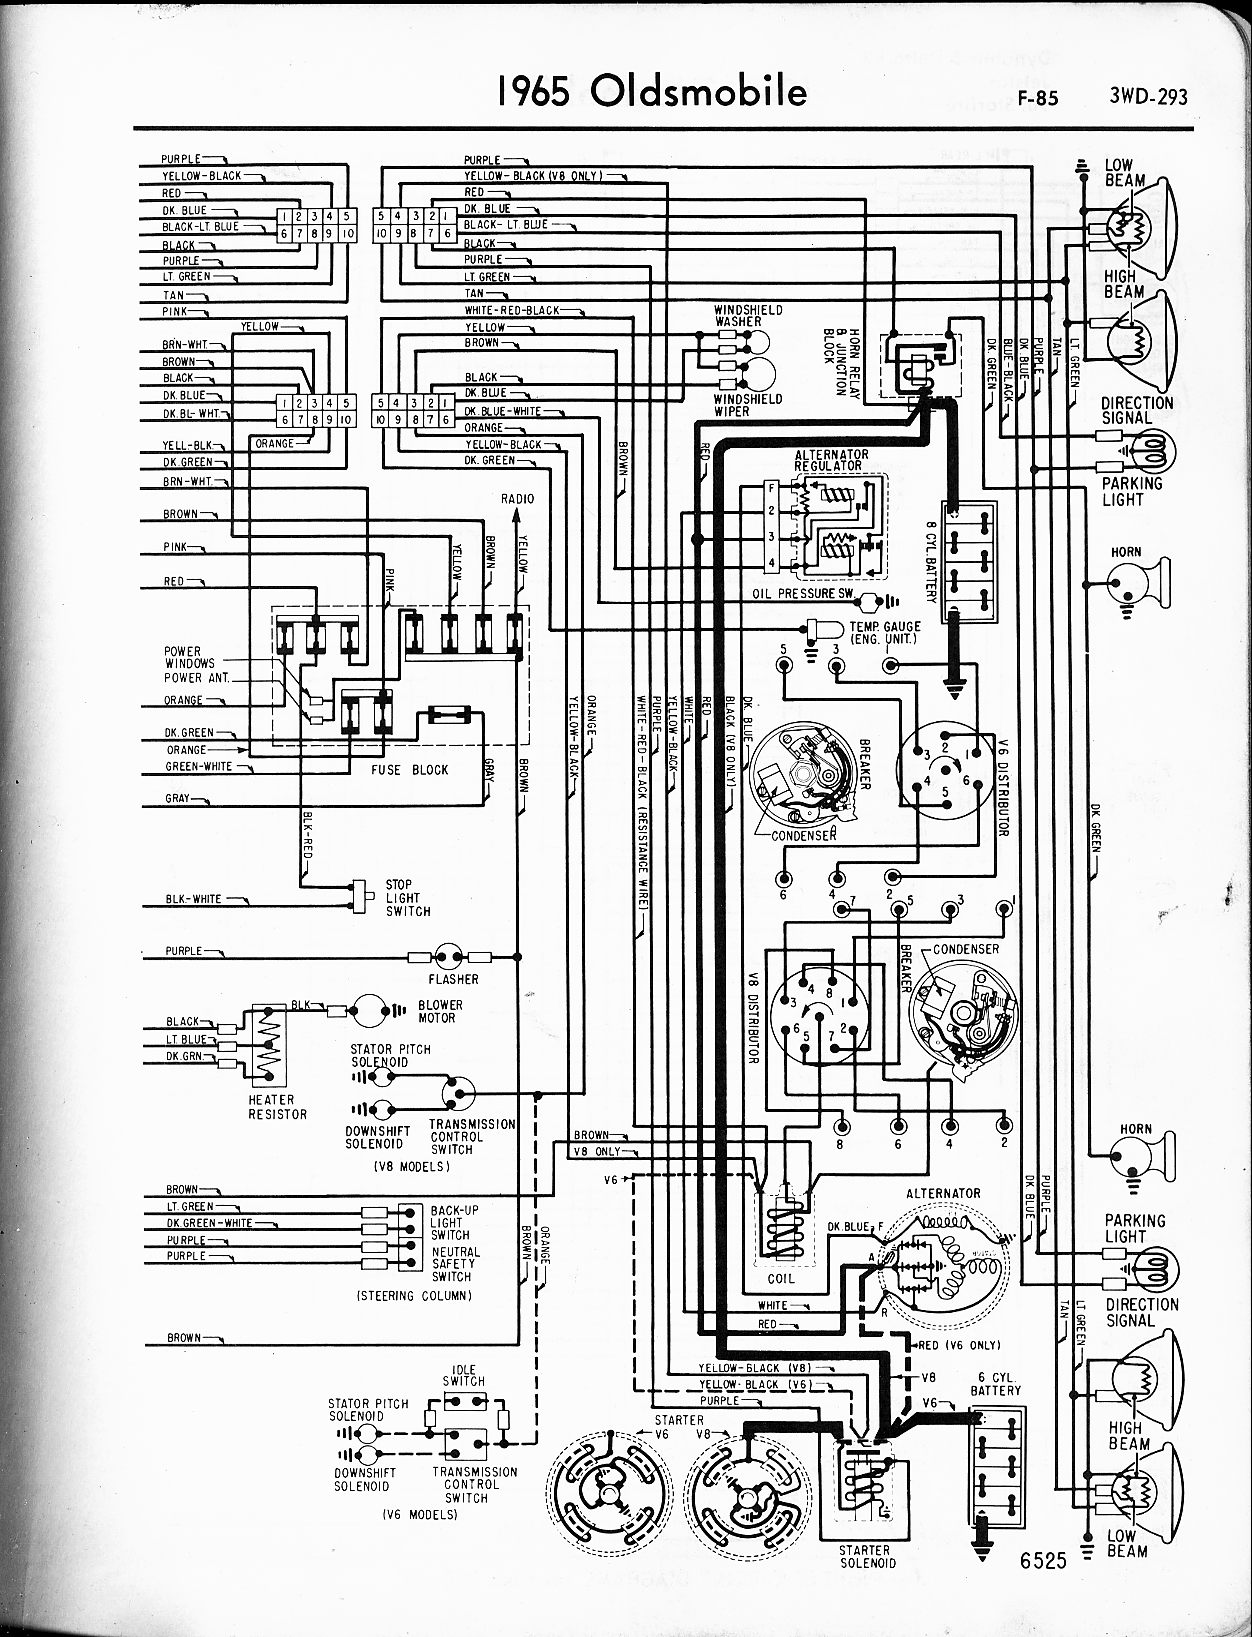 oldsmobile wiring diagrams the old car manual project 1971 chevelle wiring diagram pdf oldsmobile wiring diagrams the old